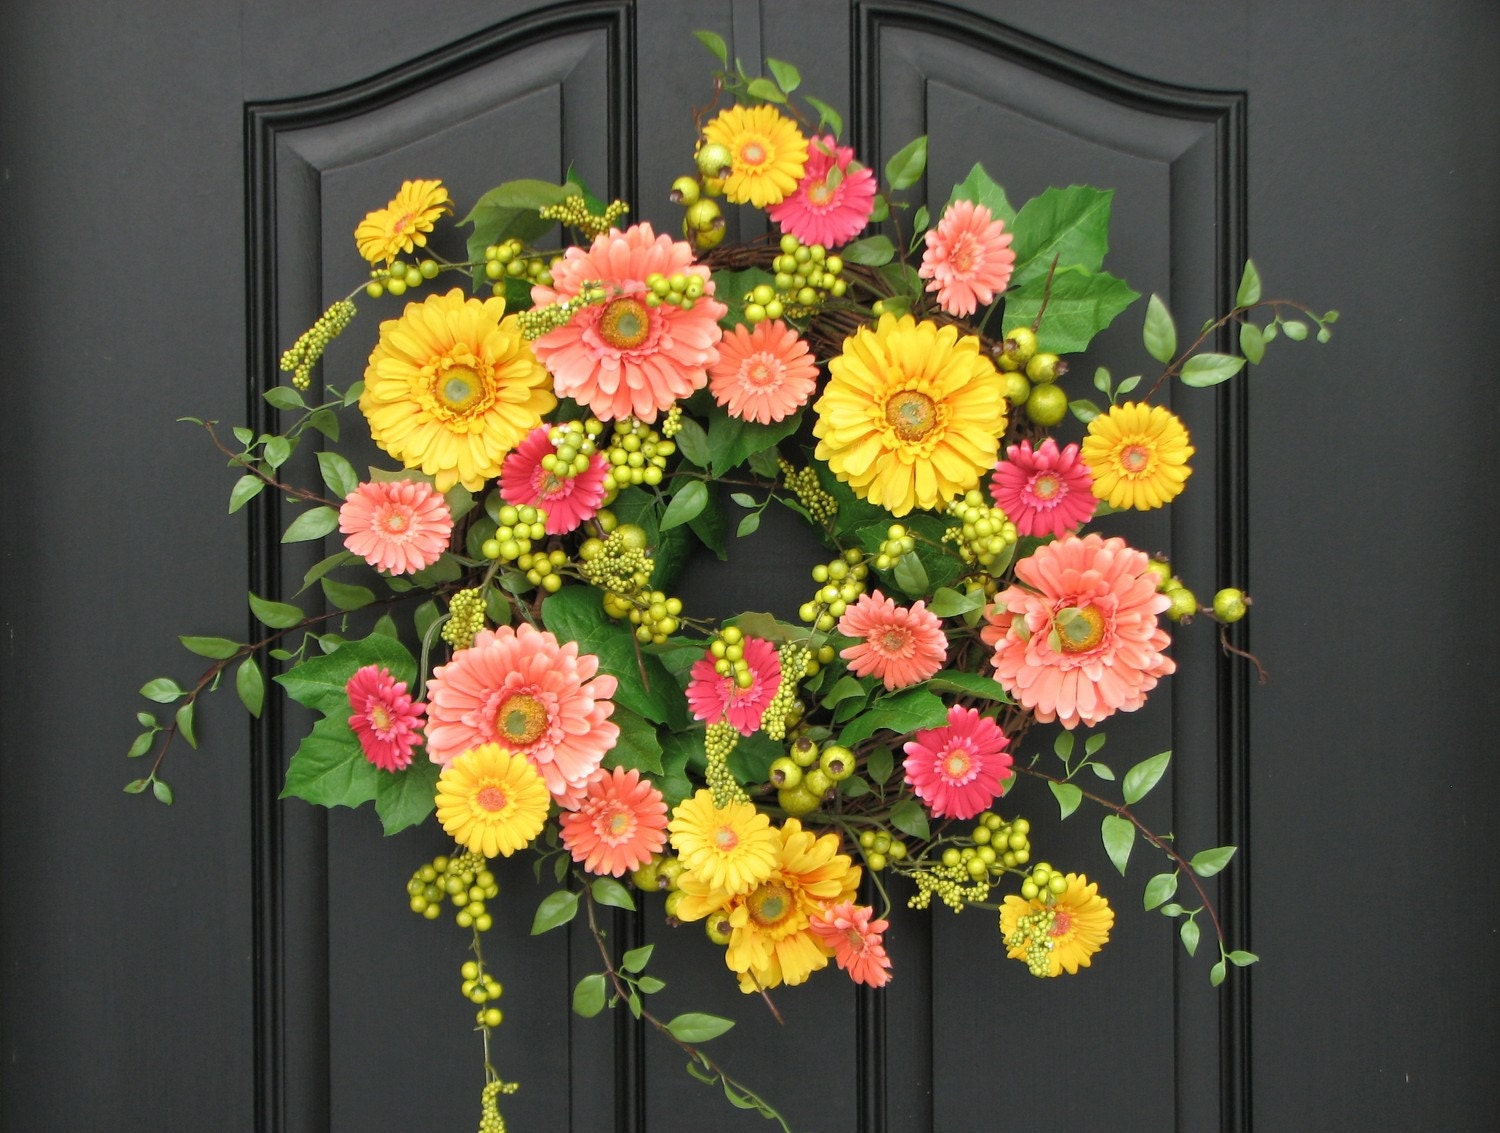 Wreaths spring wreath for front door gerber daisy wreath for Spring yard decorations